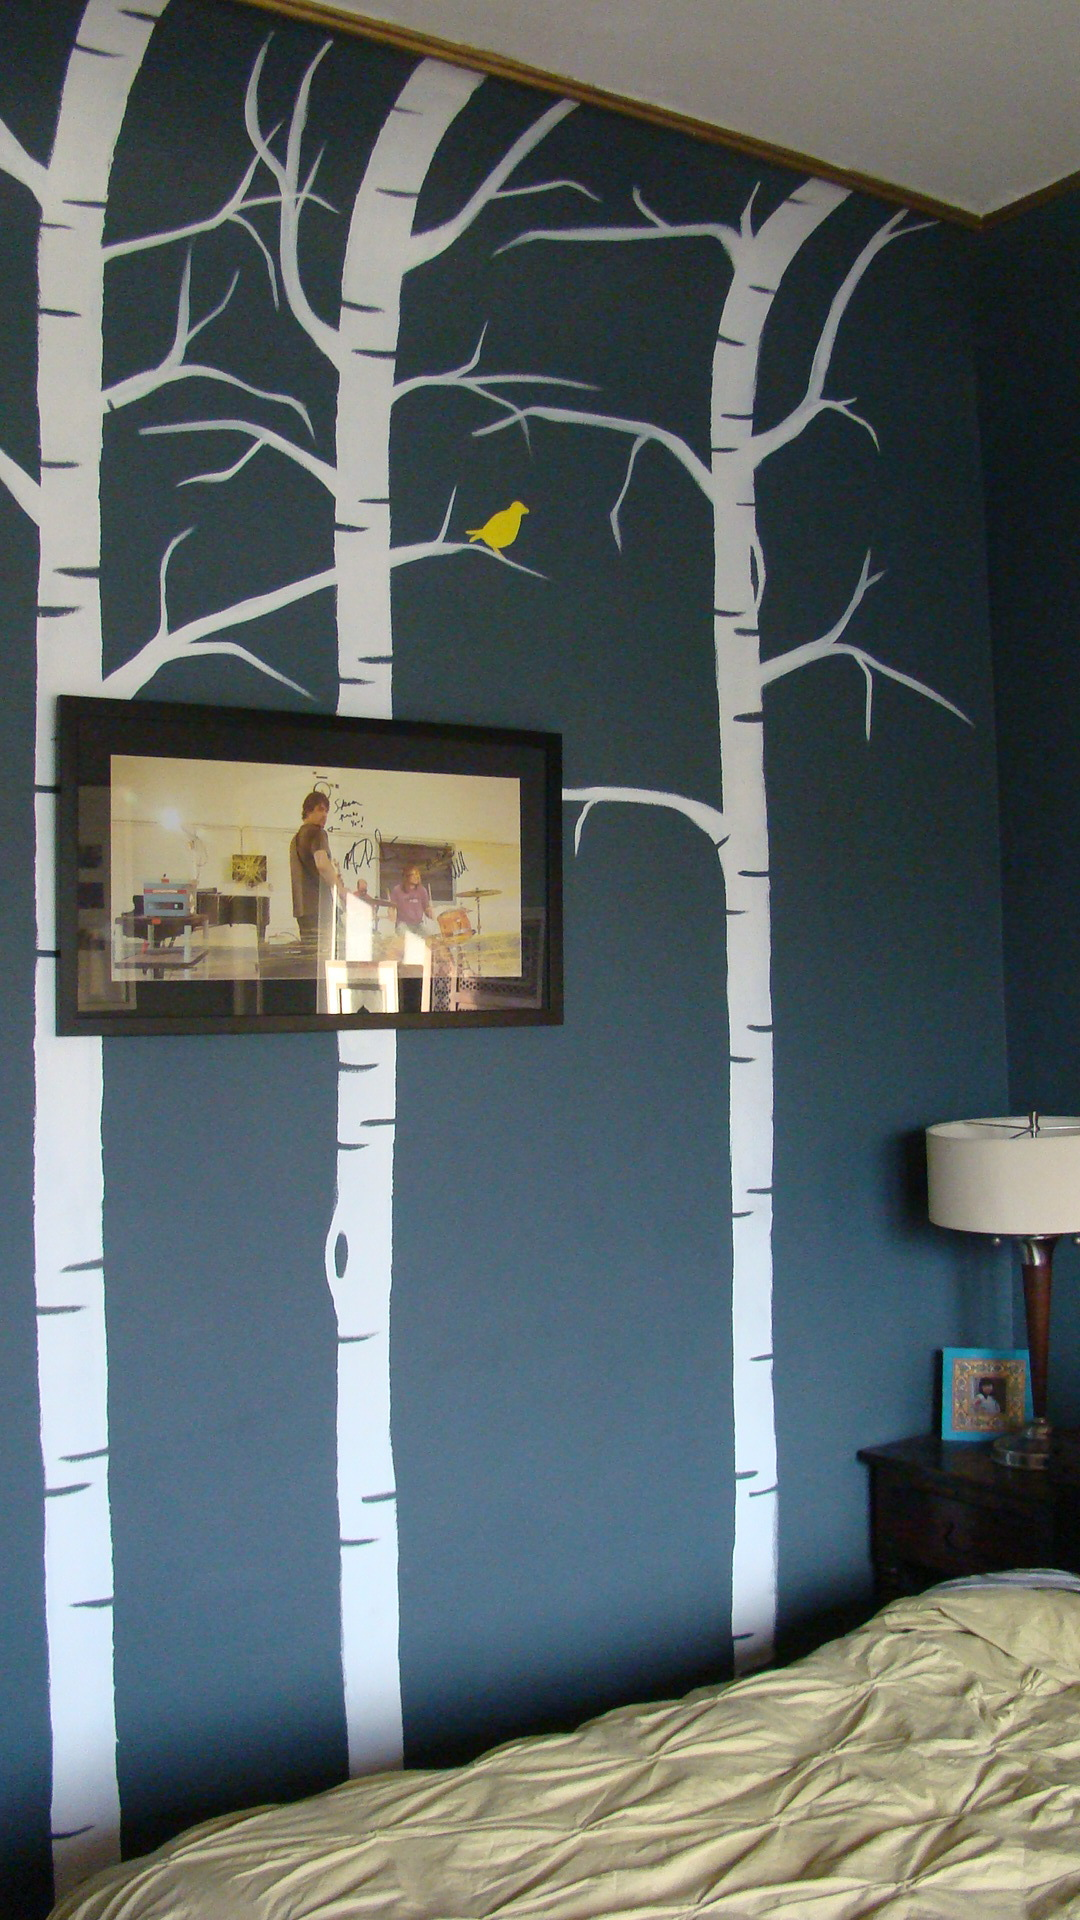 I hand painted these birch trees up the wall to create more interest and it's less commitment than wallpaper. It really brings your eyes up to our amazing ceilings.